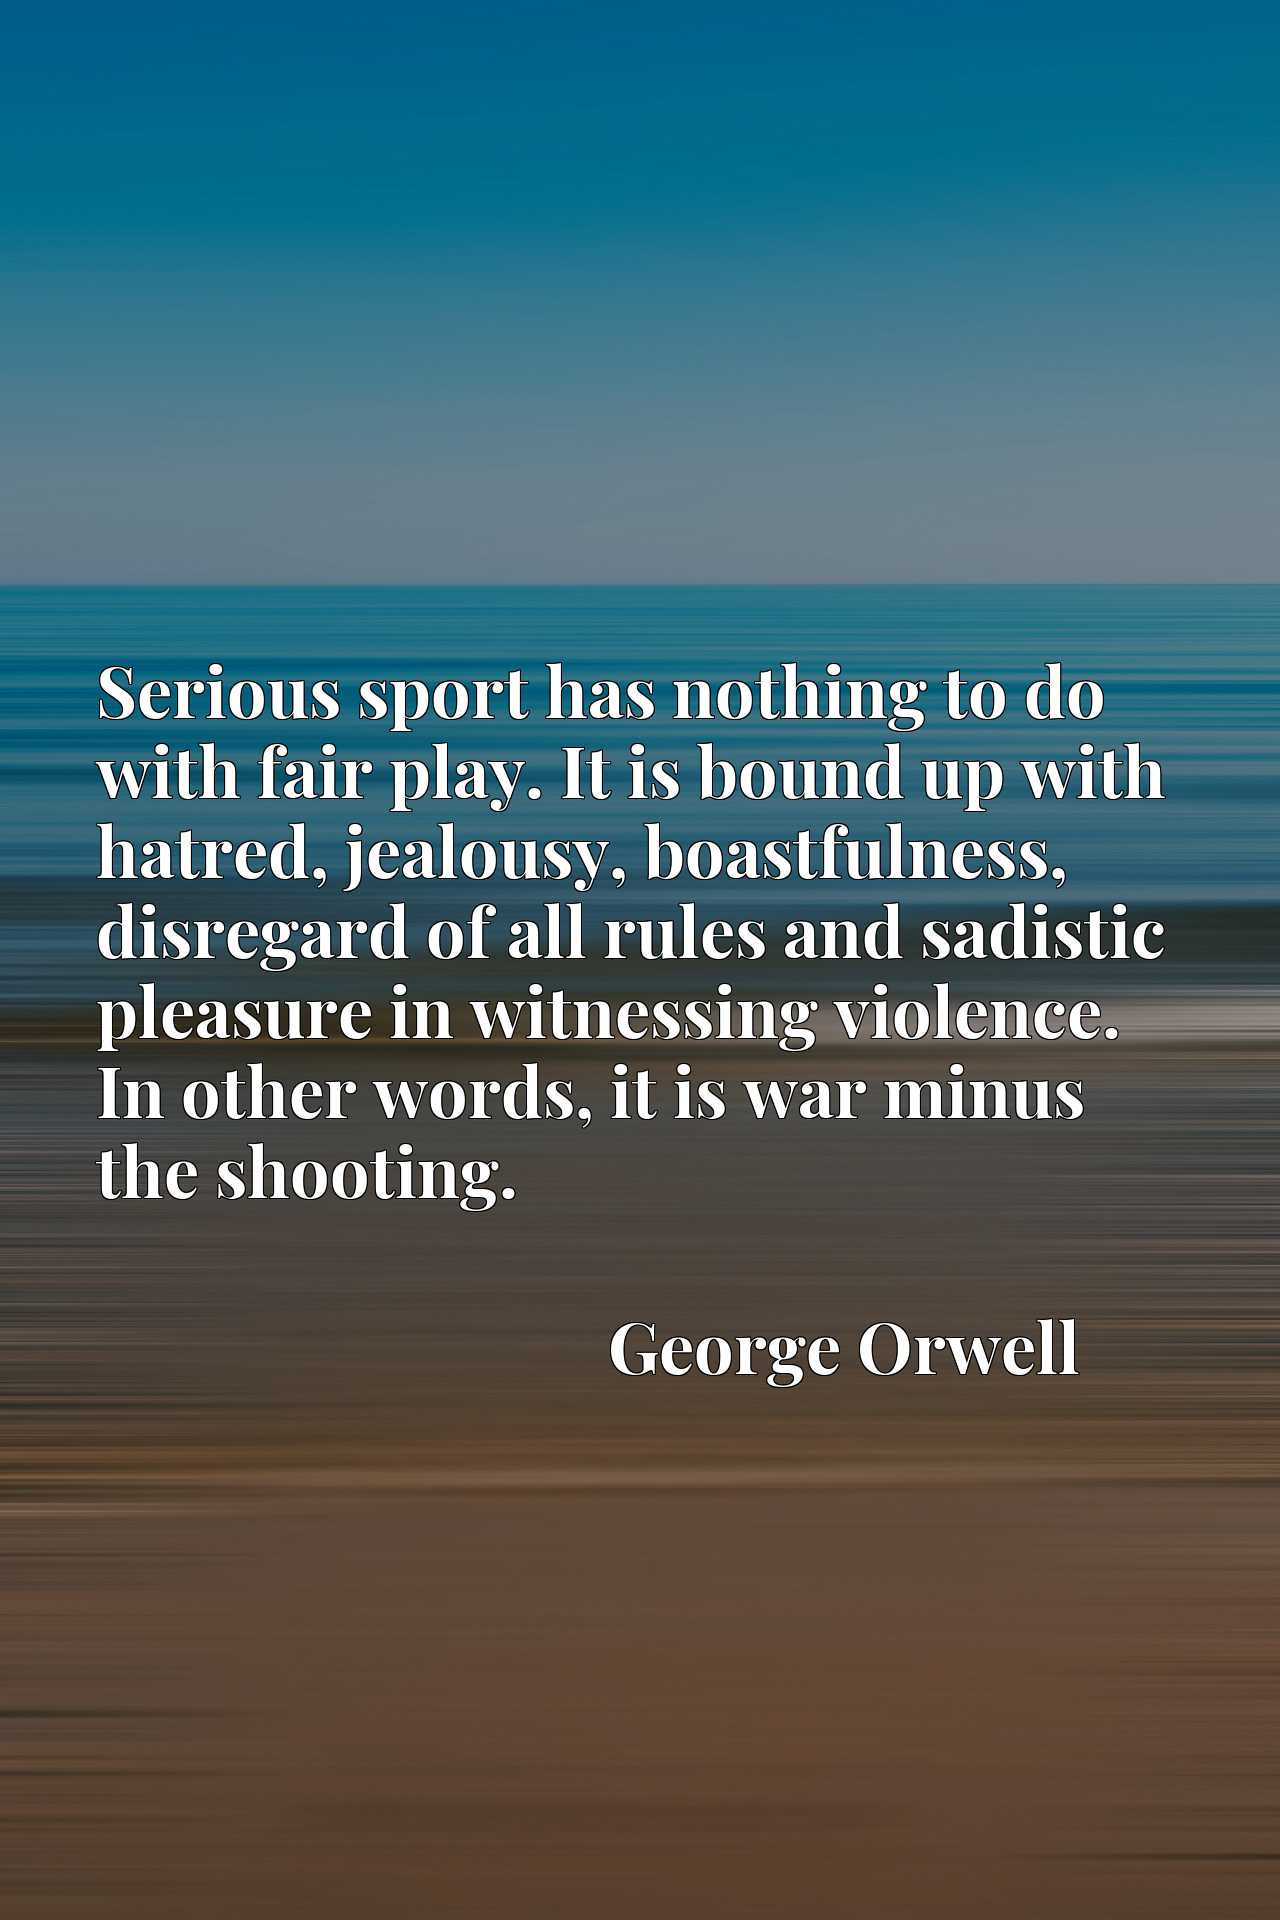 Serious sport has nothing to do with fair play. It is bound up with hatred, jealousy, boastfulness, disregard of all rules and sadistic pleasure in witnessing violence. In other words, it is war minus the shooting.